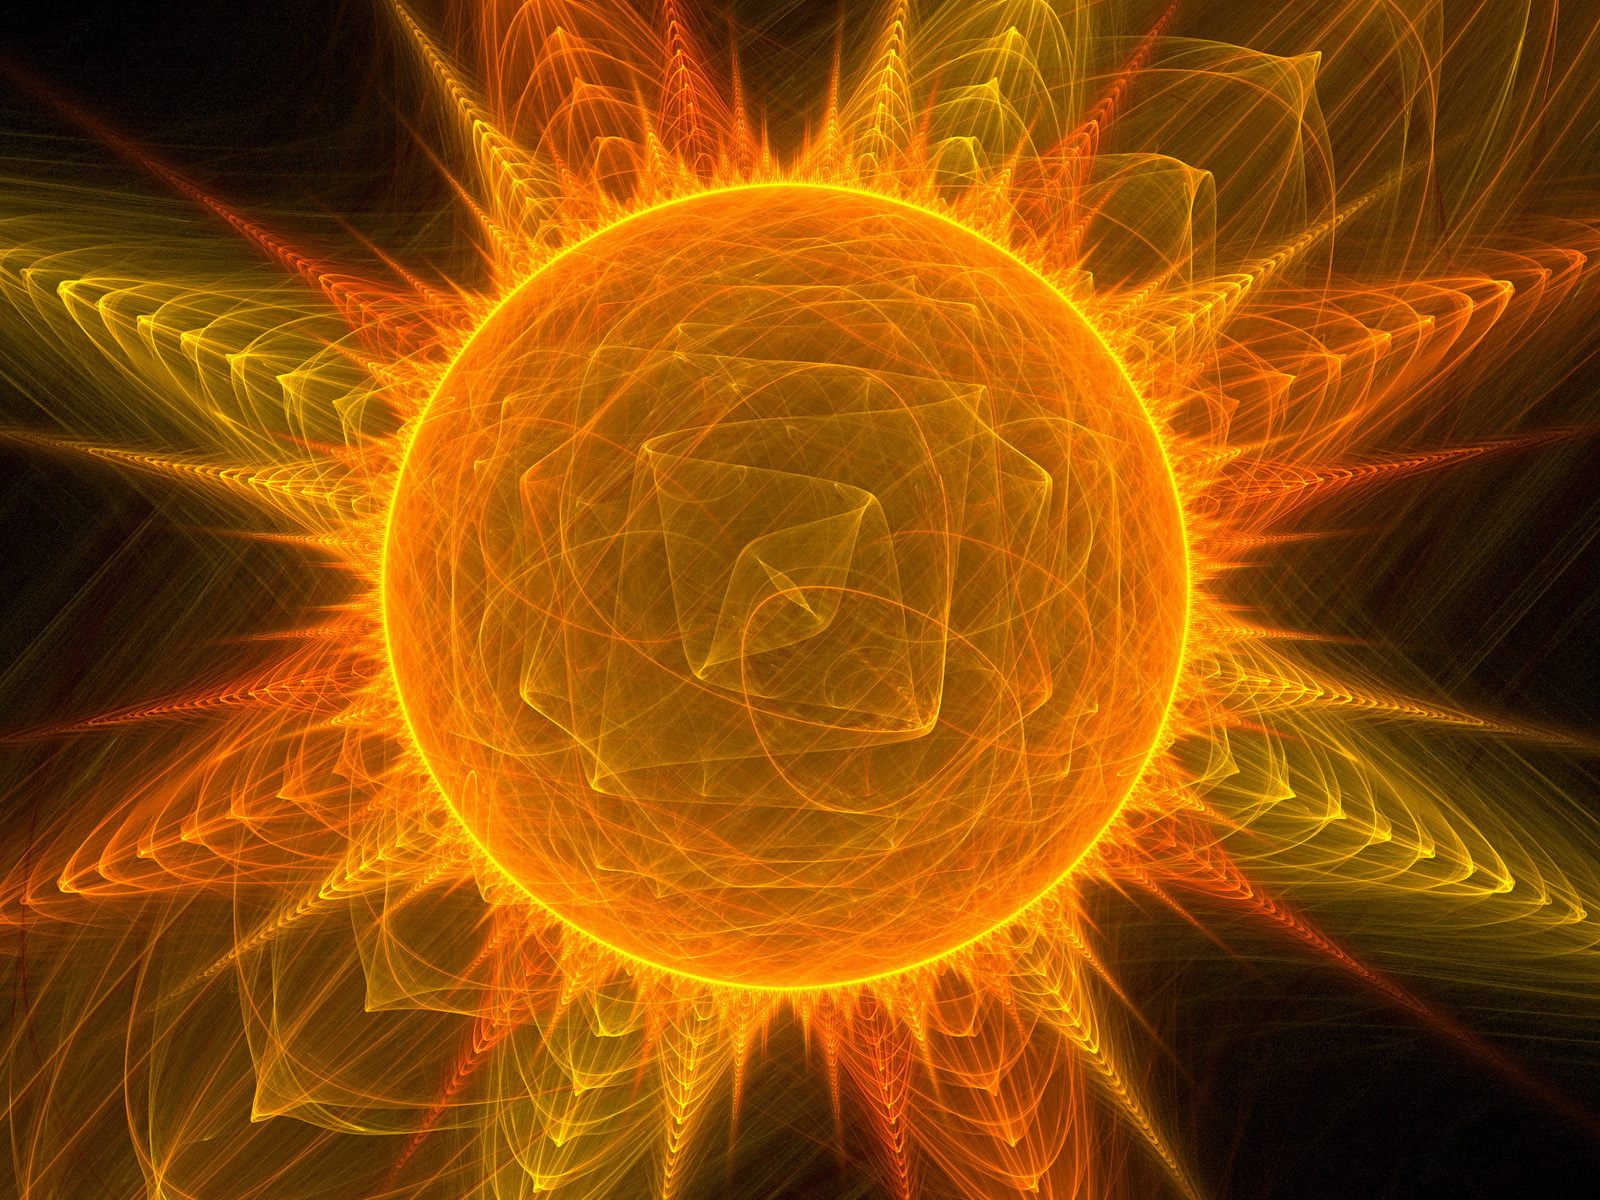 ecology soes the anle of sun